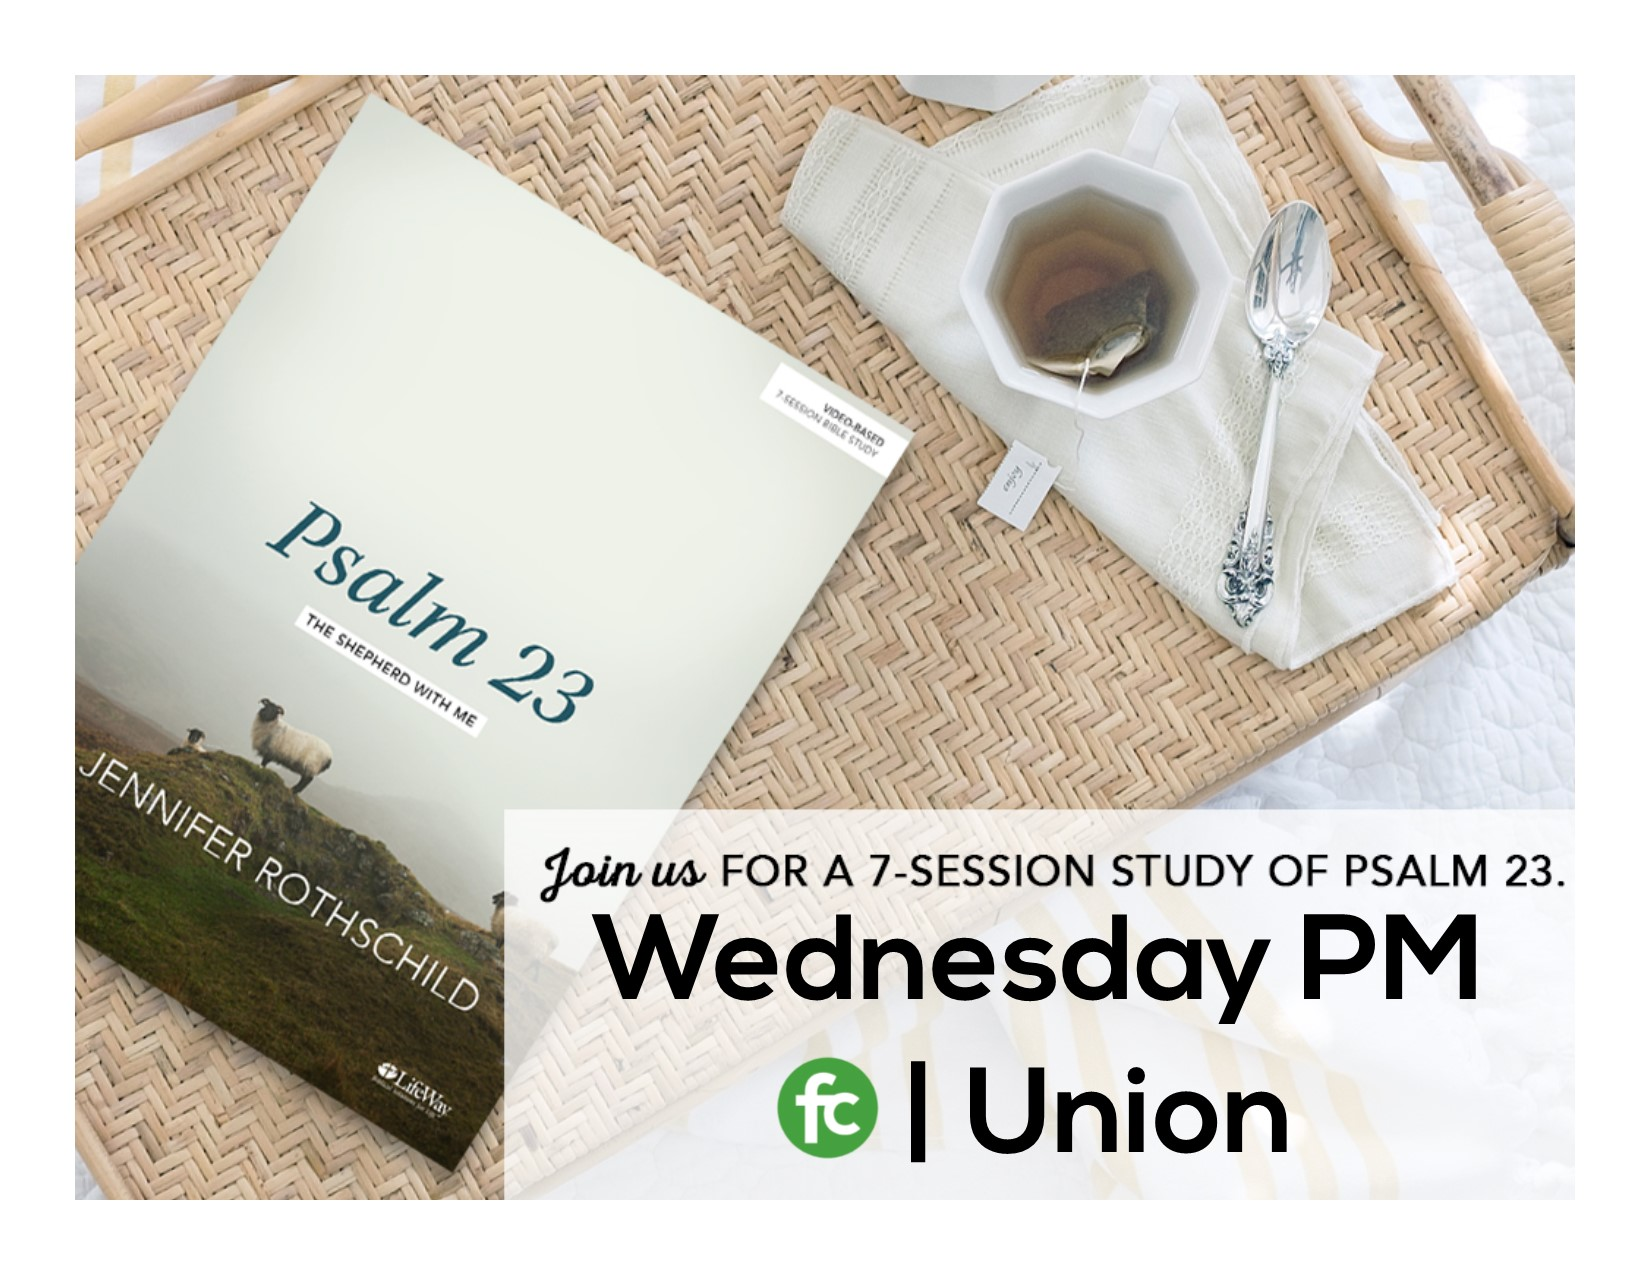 Union wed pm psalm 23 promo